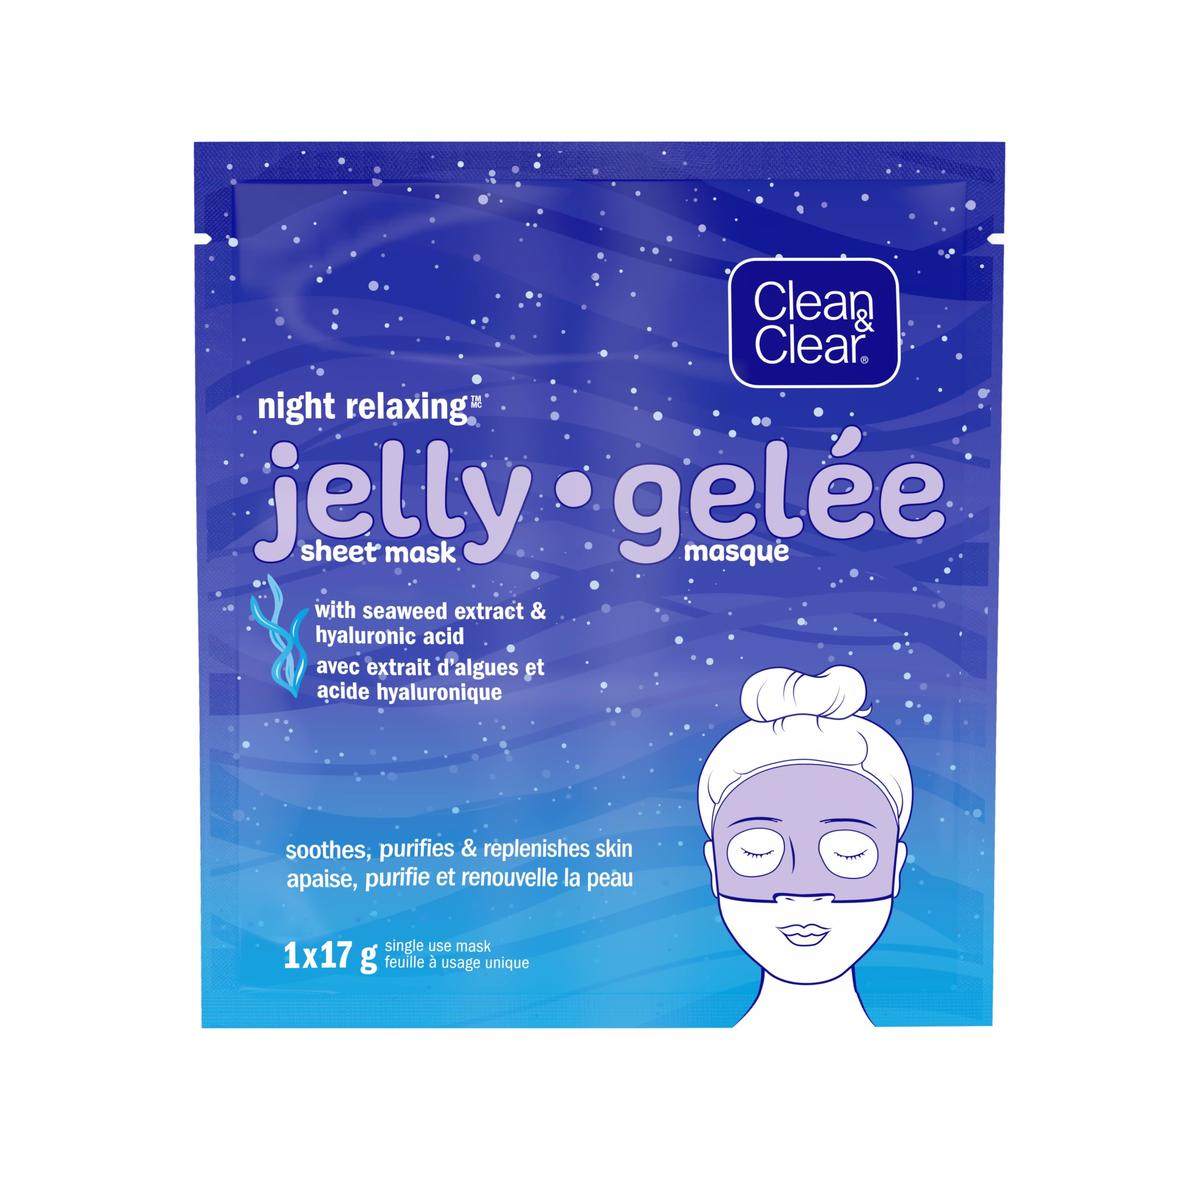 emballage du masque en gelée Clean and Clear night relaxing en feuilles